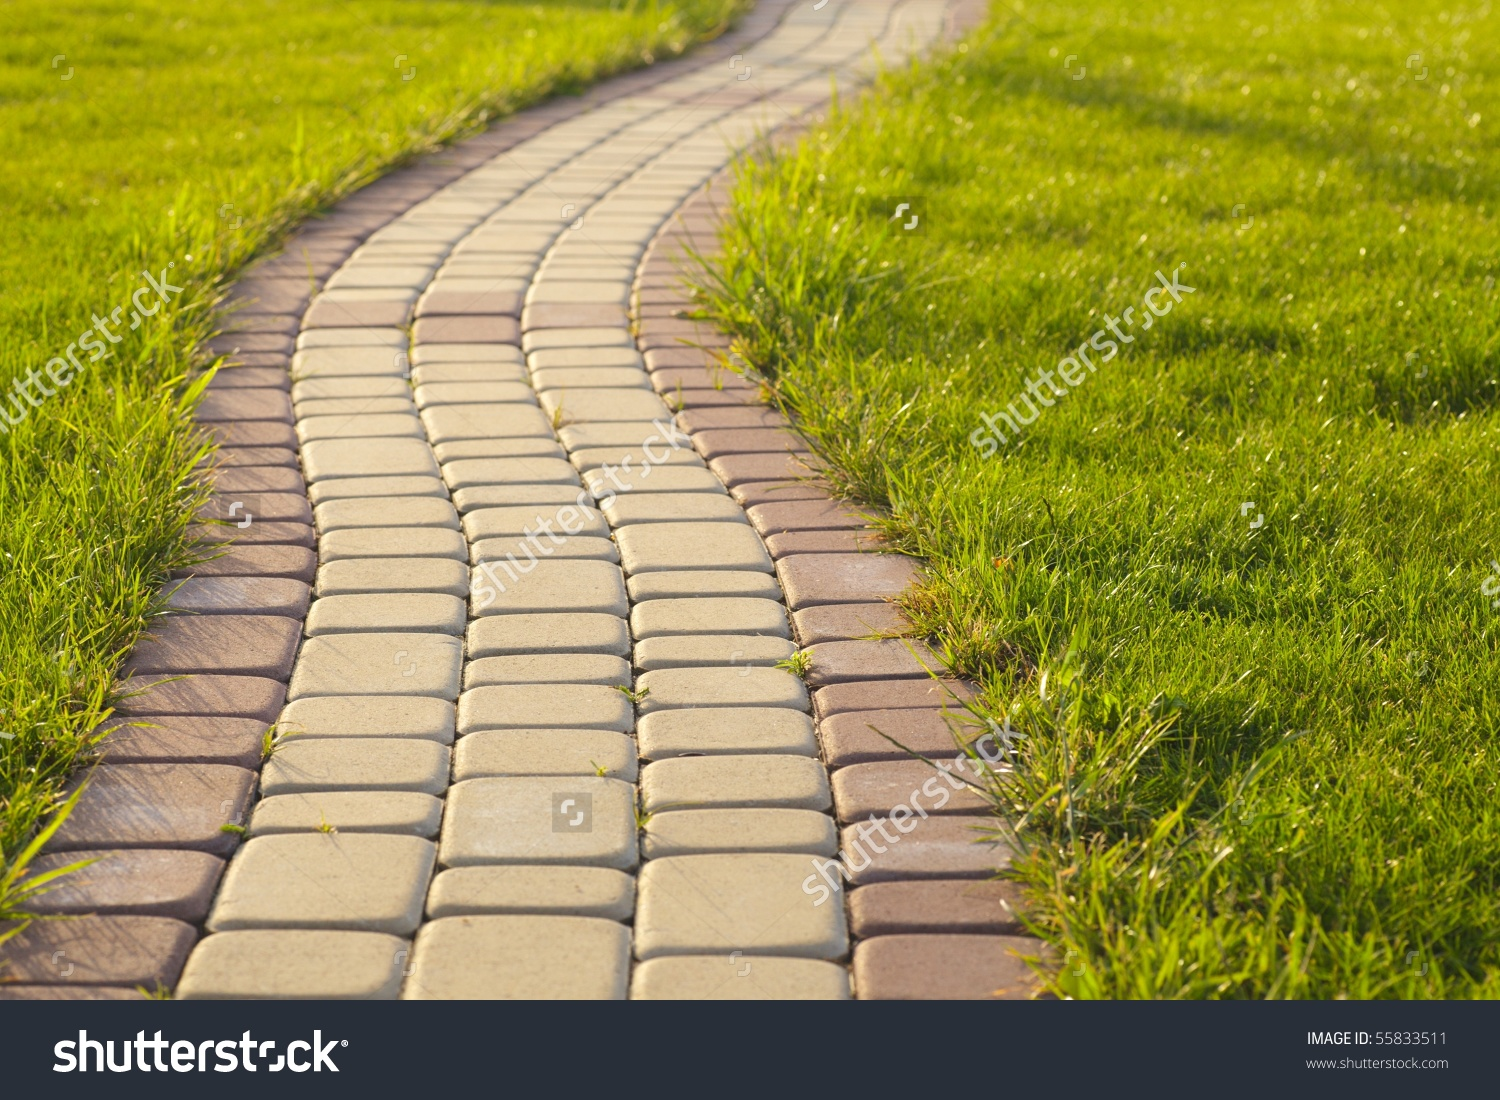 Garden Stone Path Grass Growing Between Stock Photo 55833511.